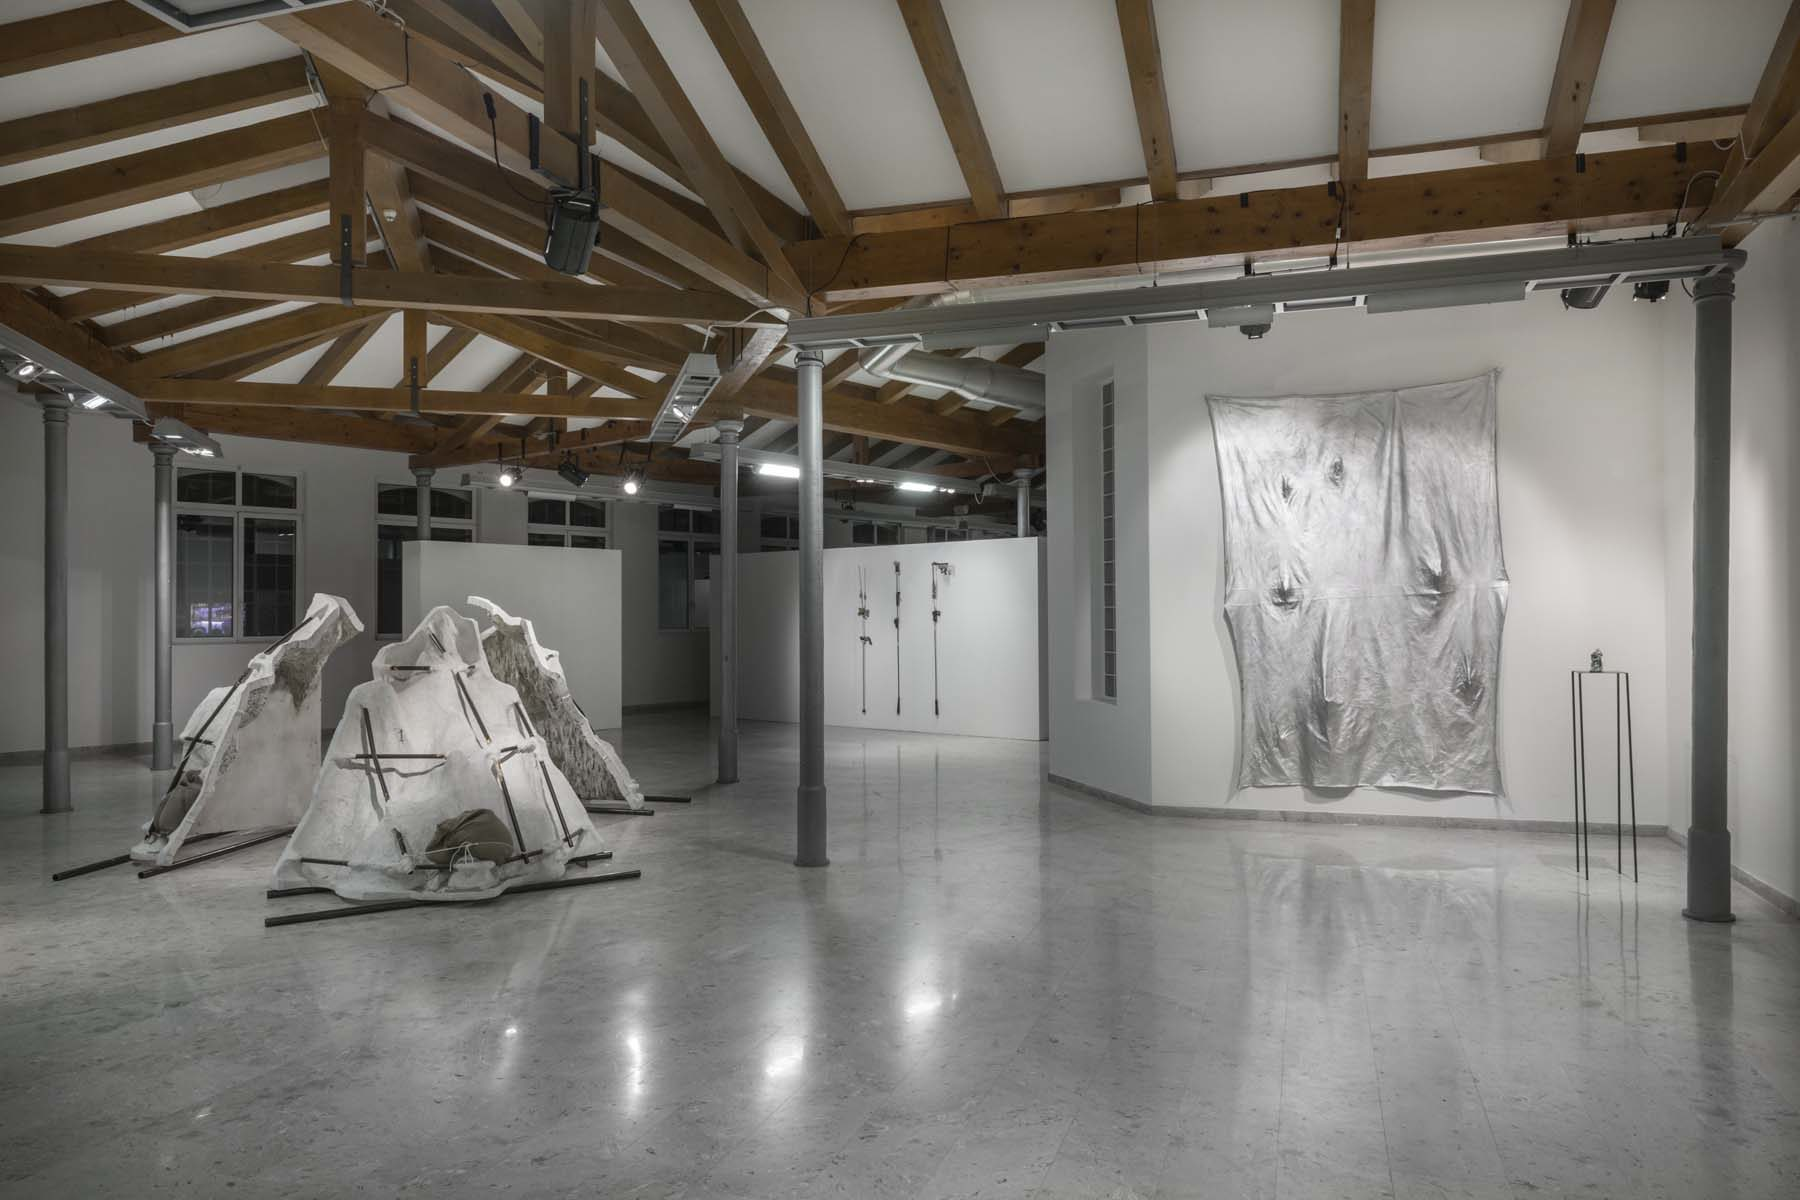 Intervallo di confidenza, GC.AC di Monfalcone, installation view, ph. A. Ruzzier